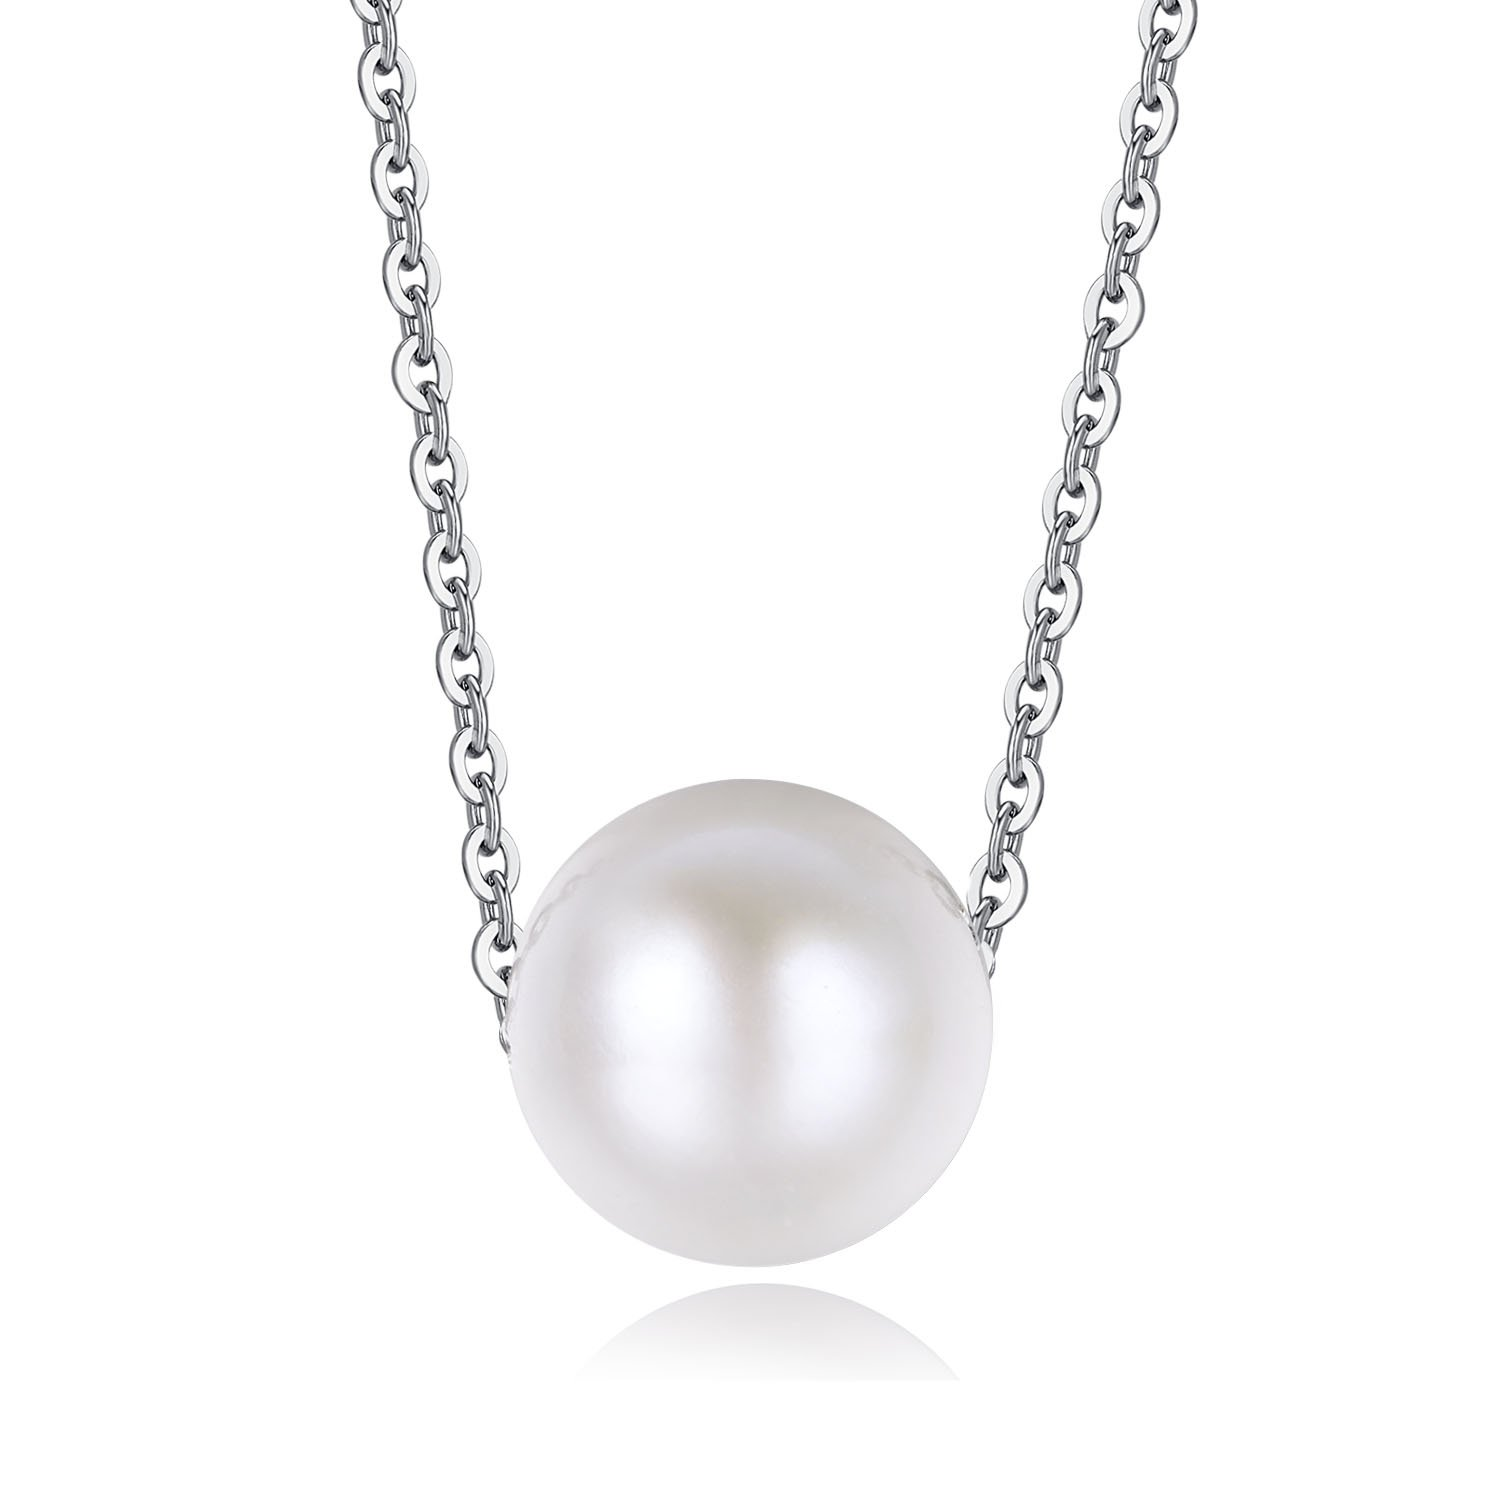 Precious Time Jewelry 9.5mm - 10.5mm White Freshwater Cultured Round Pearl 925 Sterling Silver Necklace with Certificate 16''+2'' by precious time jewelry